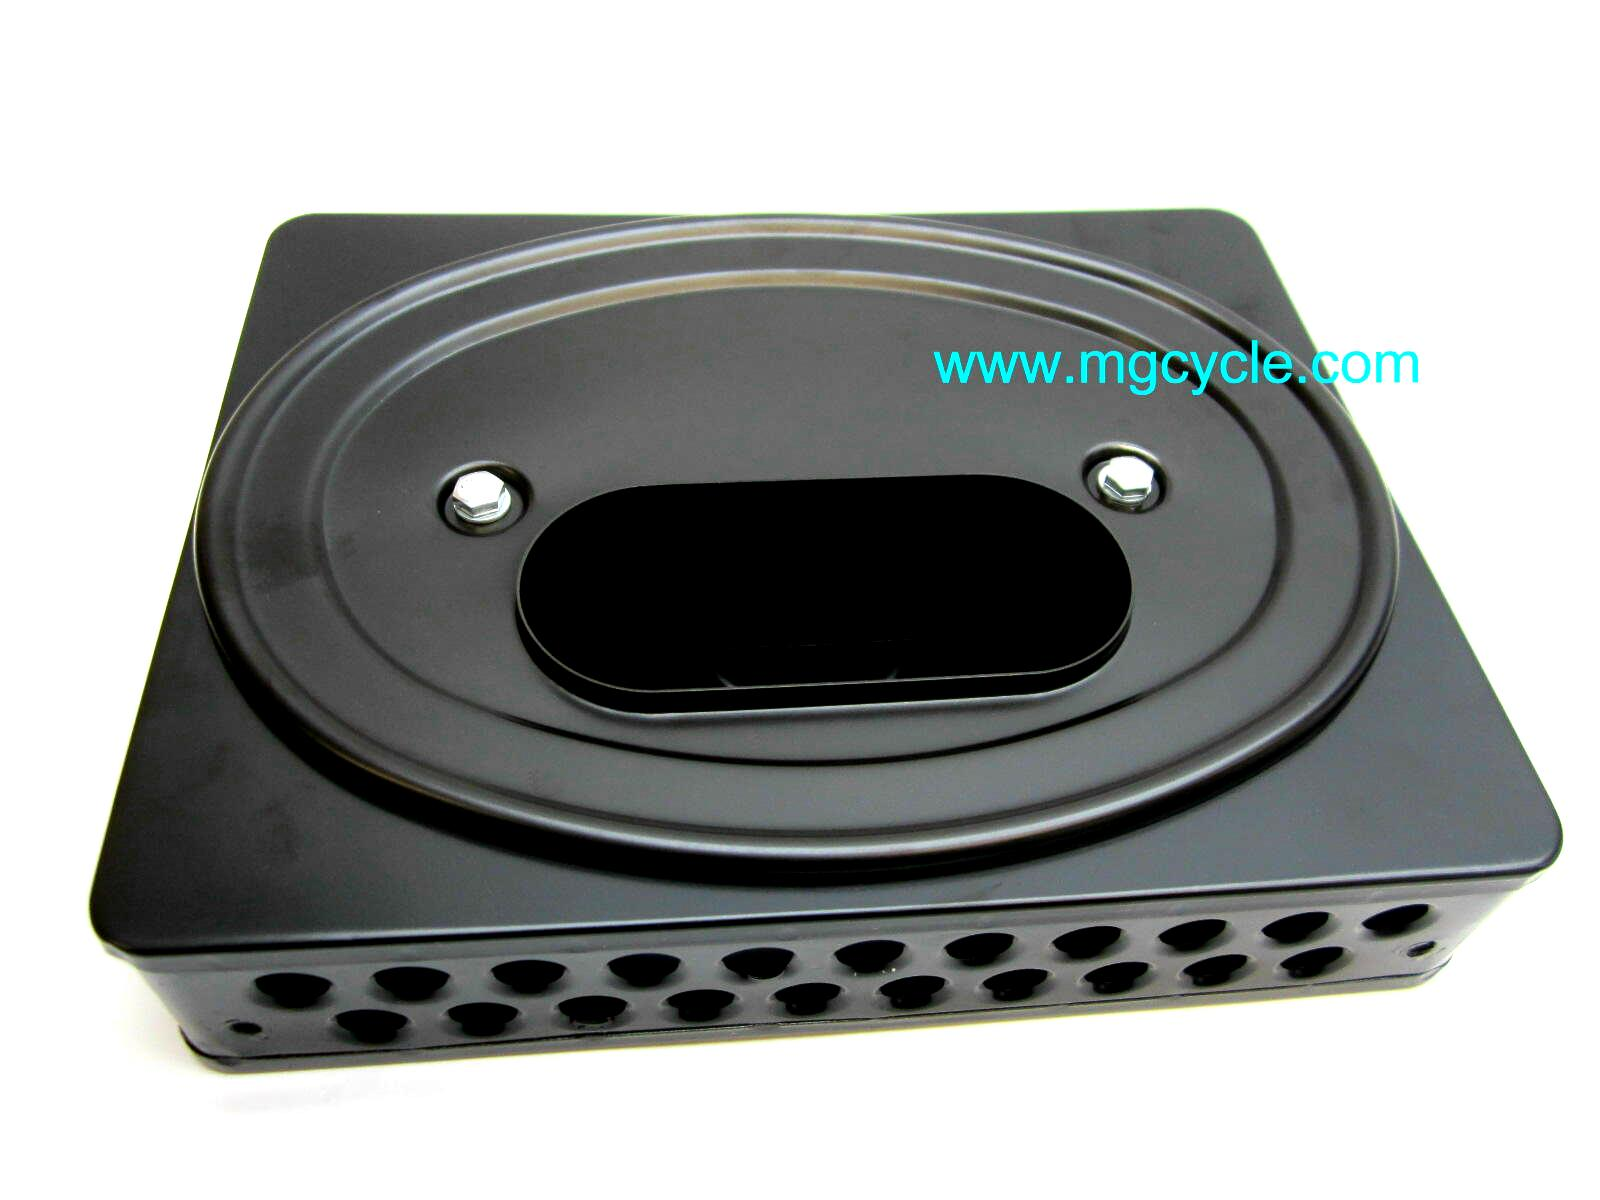 Air box assembly for original Eldorado, Ambassador, V700